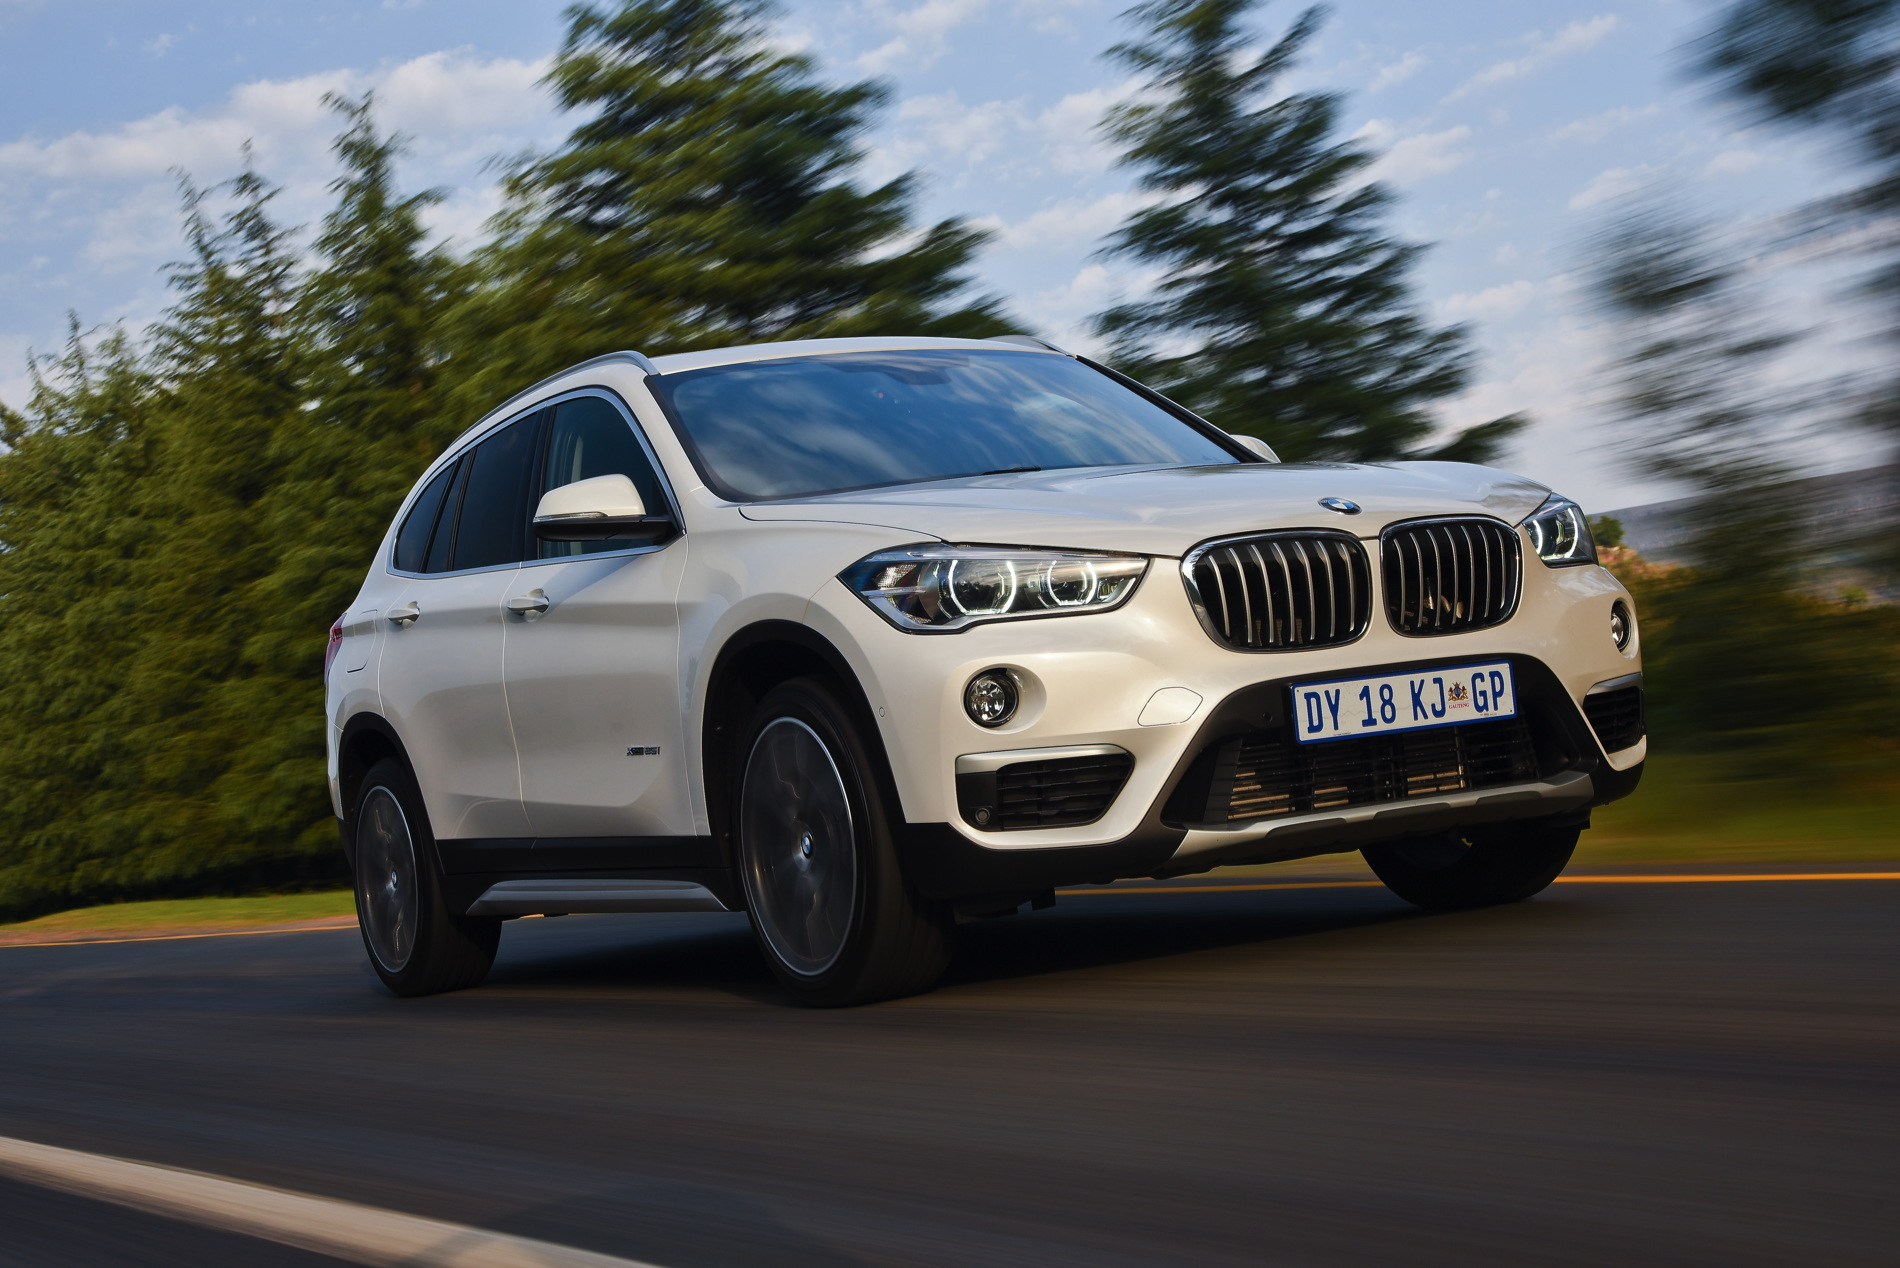 Bmw X1 Vs Audi Q3 Vs Lexus Nx200t Vs Mercedes Gla250 Vs